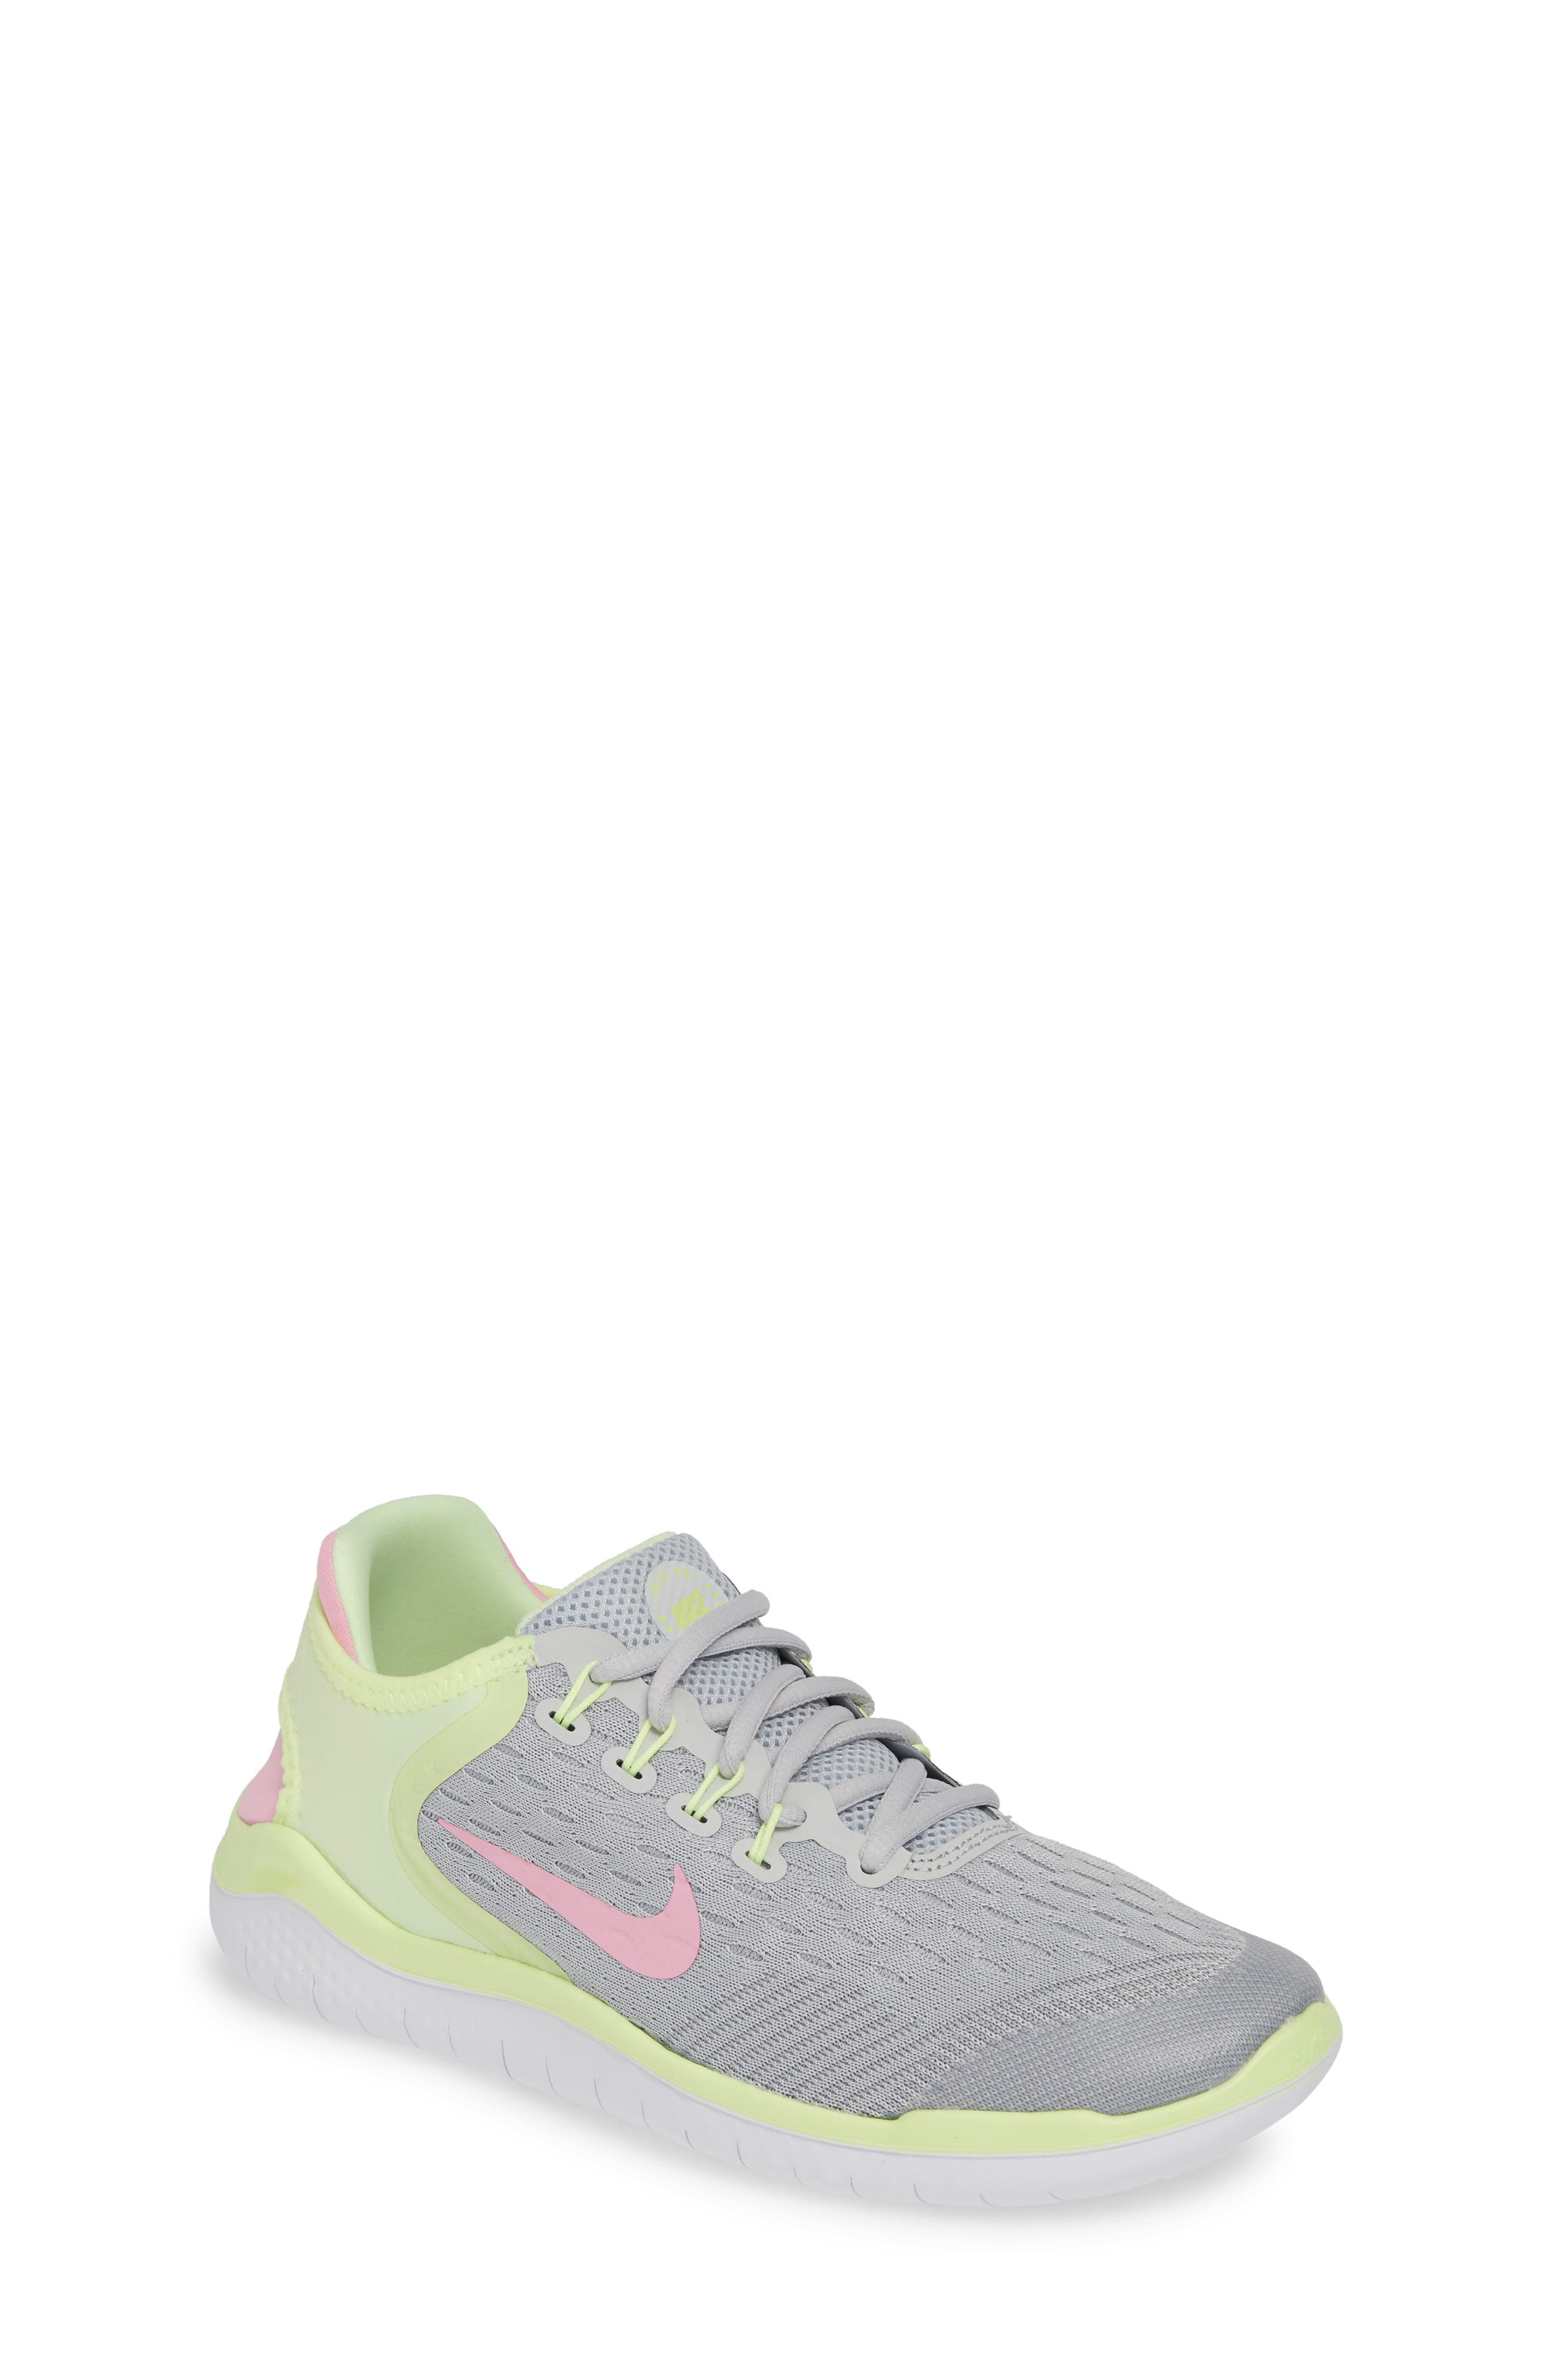 NIKE Free RN 2018 Running Shoe, Main, color, PURE PLATINUM/ PINK RISE-VOLT